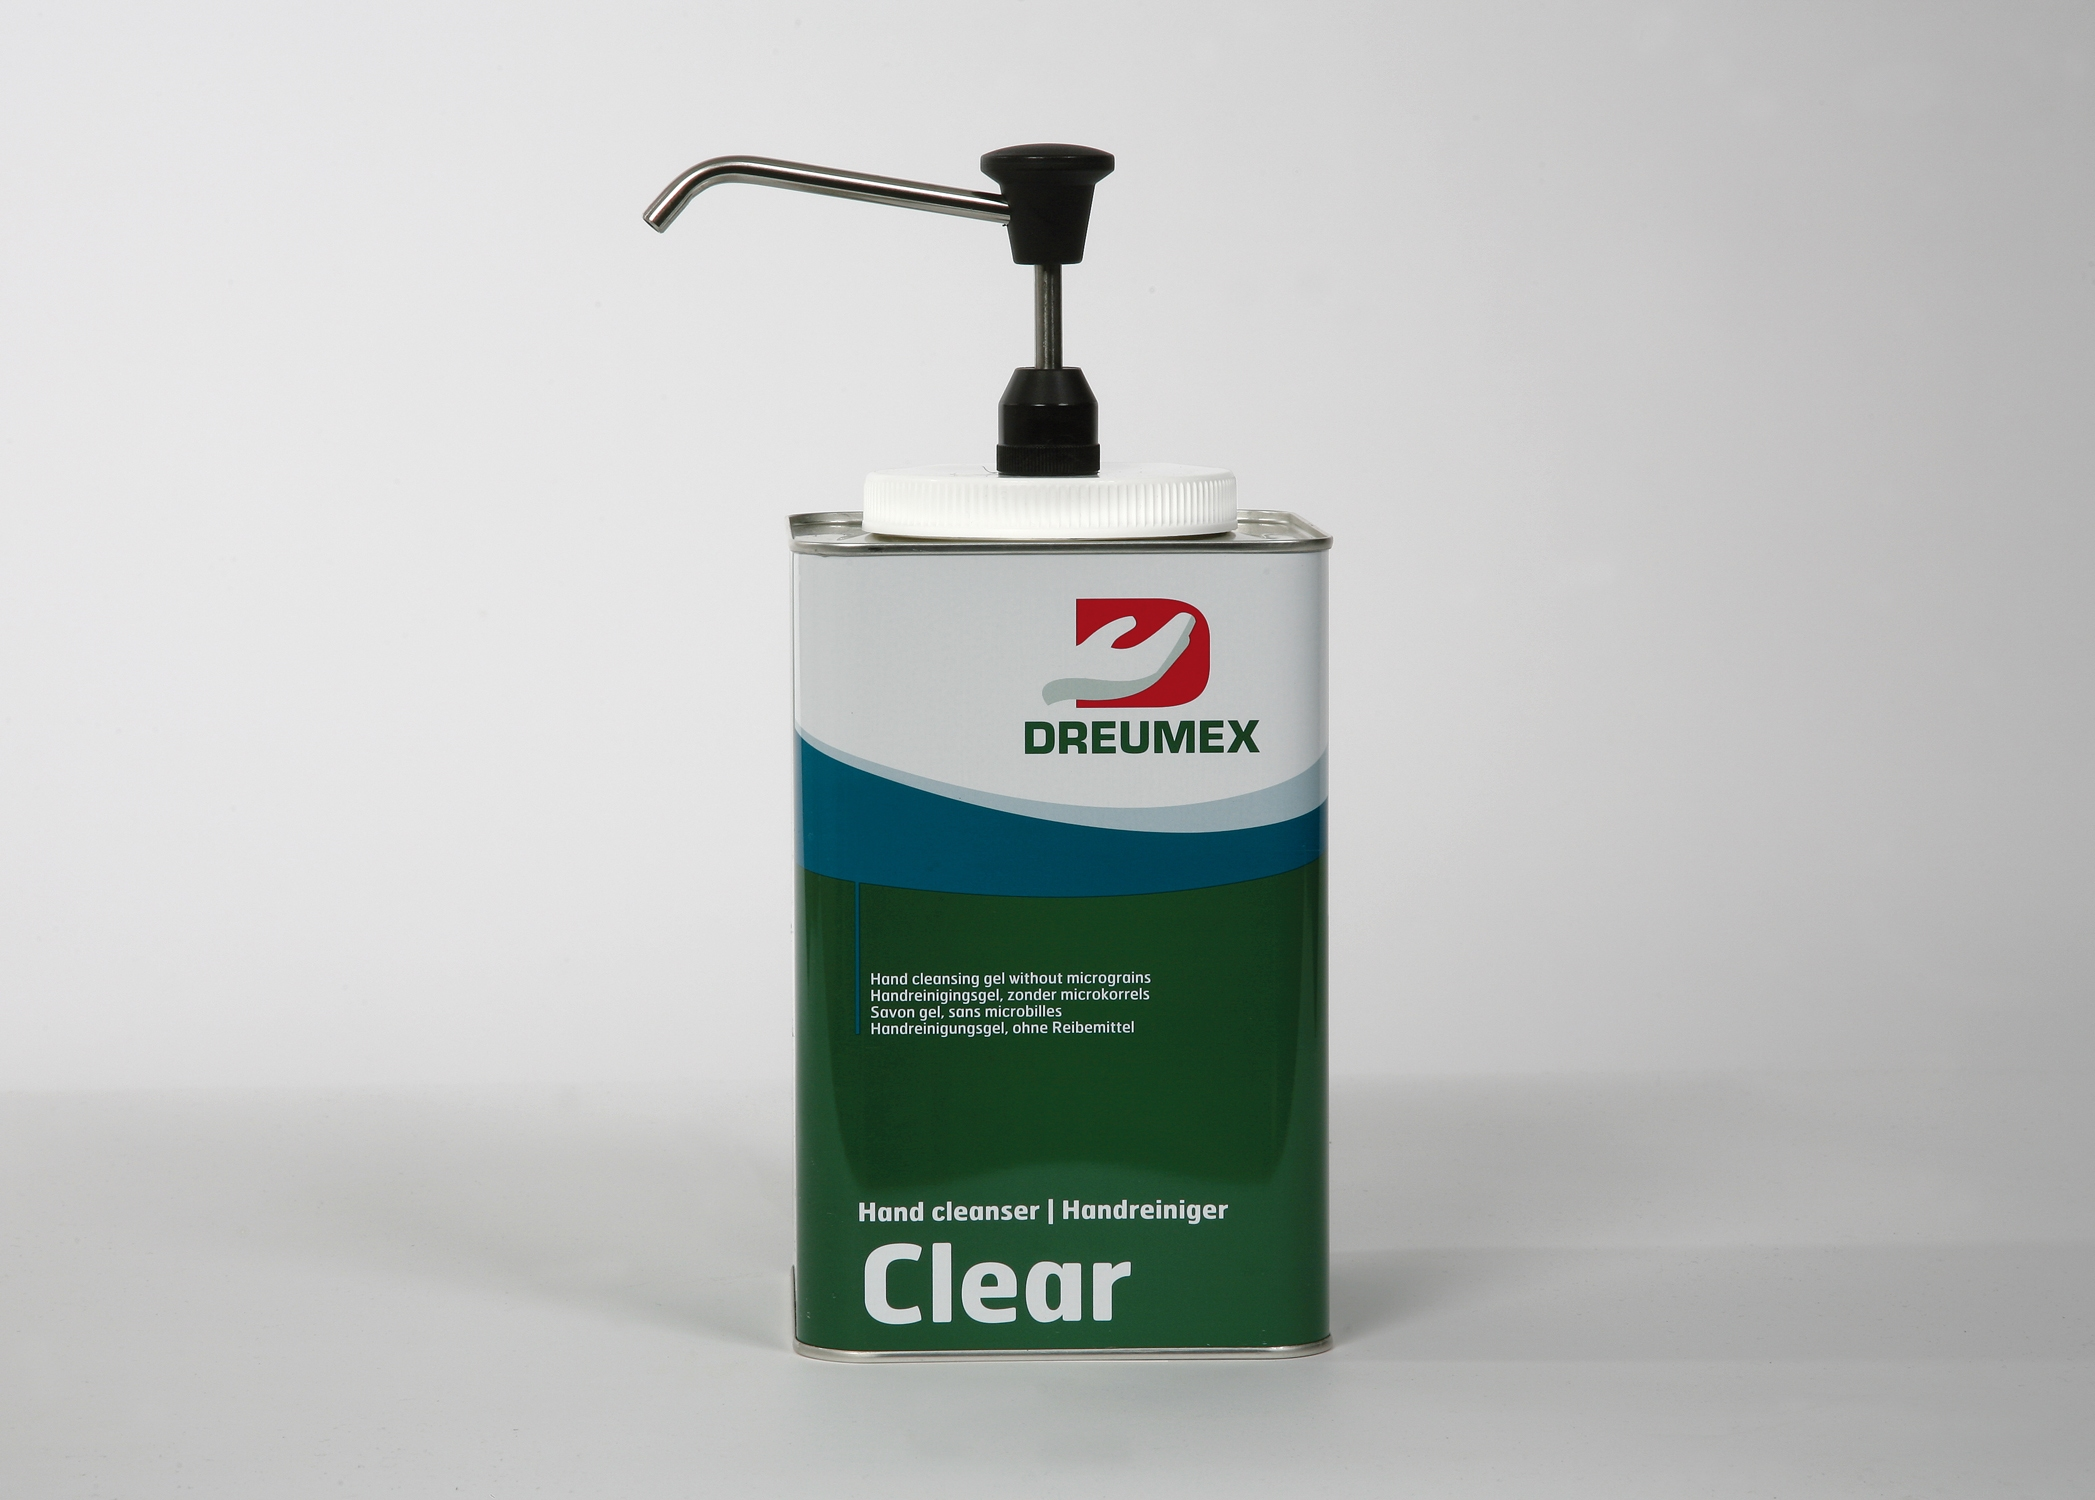 Dreumex Clear 4x4.5L PET